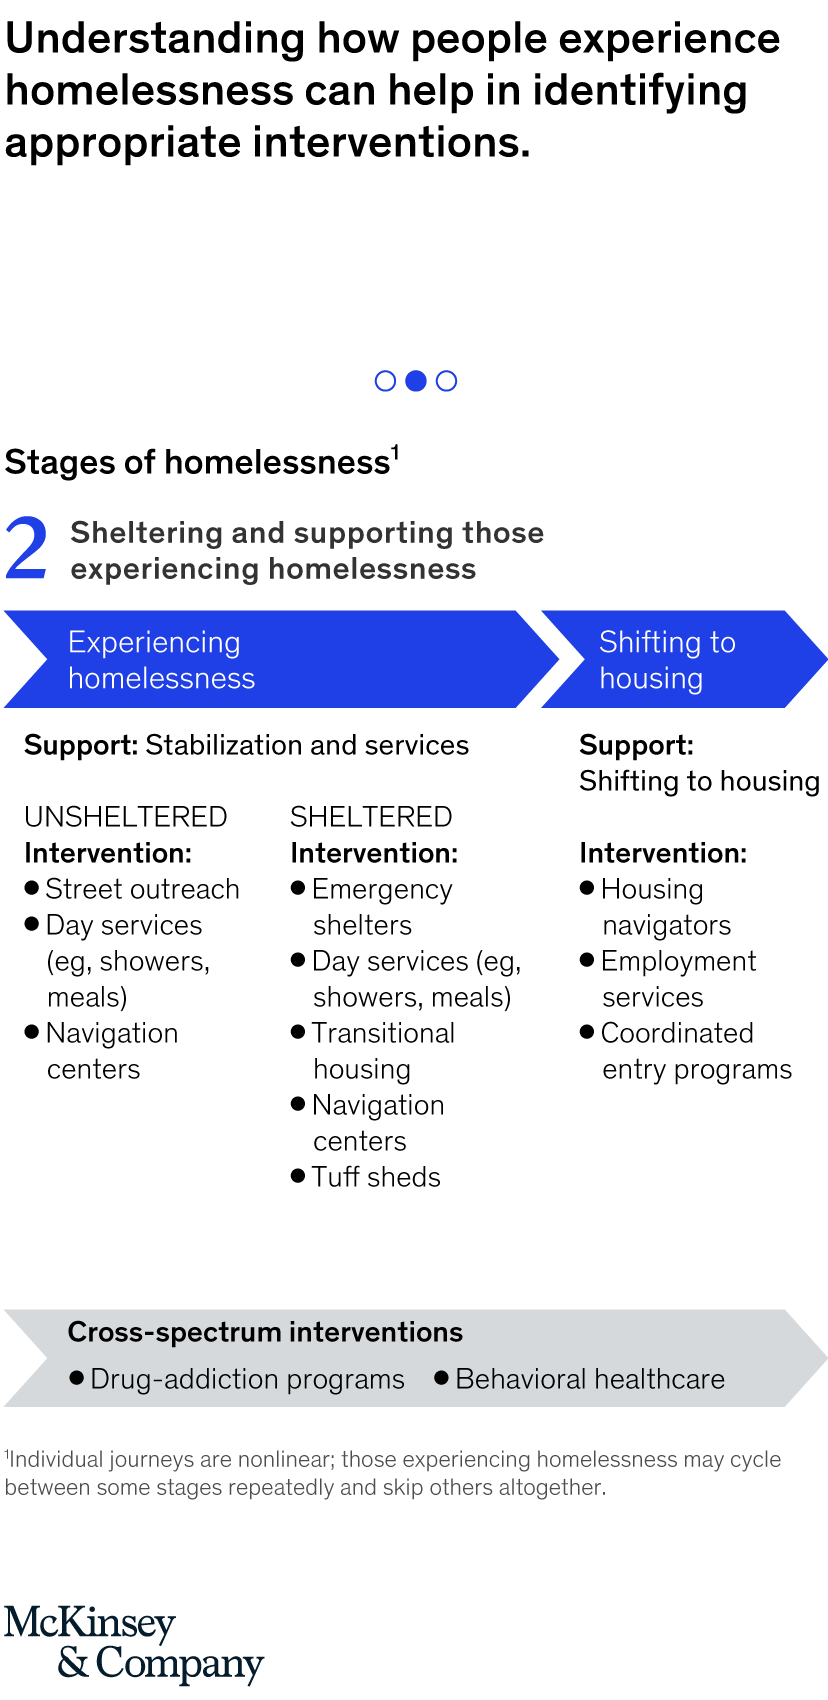 Homelessness in the San Francisco Bay Area: The crisis and a